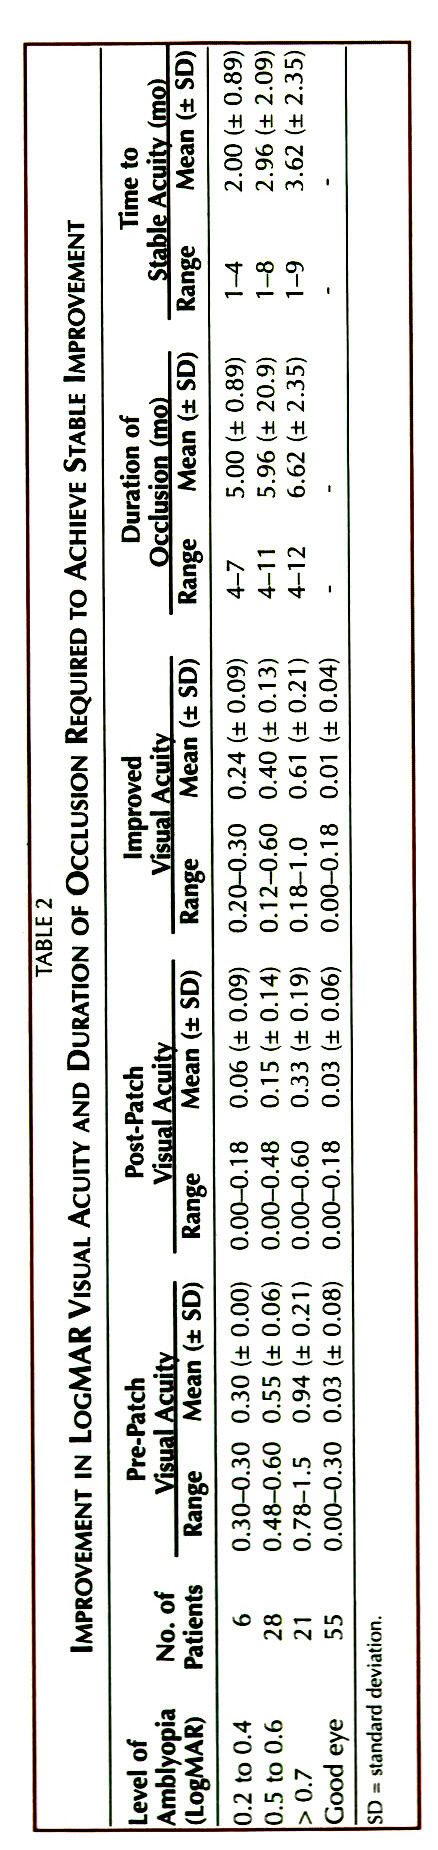 TABLE 2IMPROVEMENT IN LOGMAR VISUAL Acuny AND DURATION OF OCCLUSION REQUIRED TO ACHIEVE STABLE IMPROVEMENT